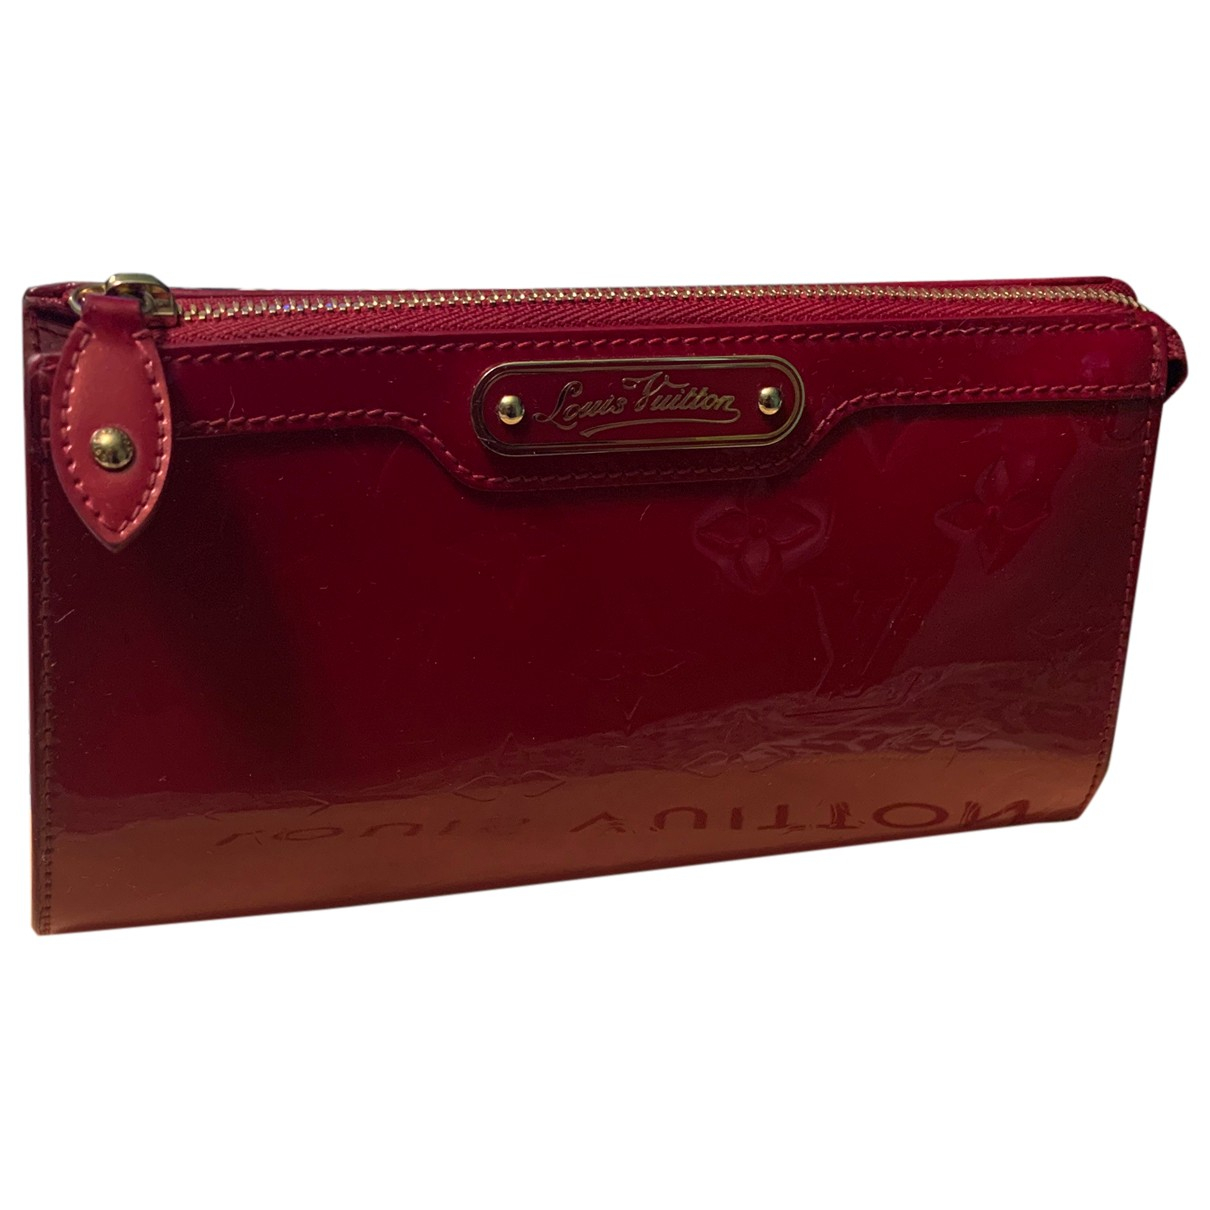 Louis Vuitton N Red Patent leather Travel bag for Women N